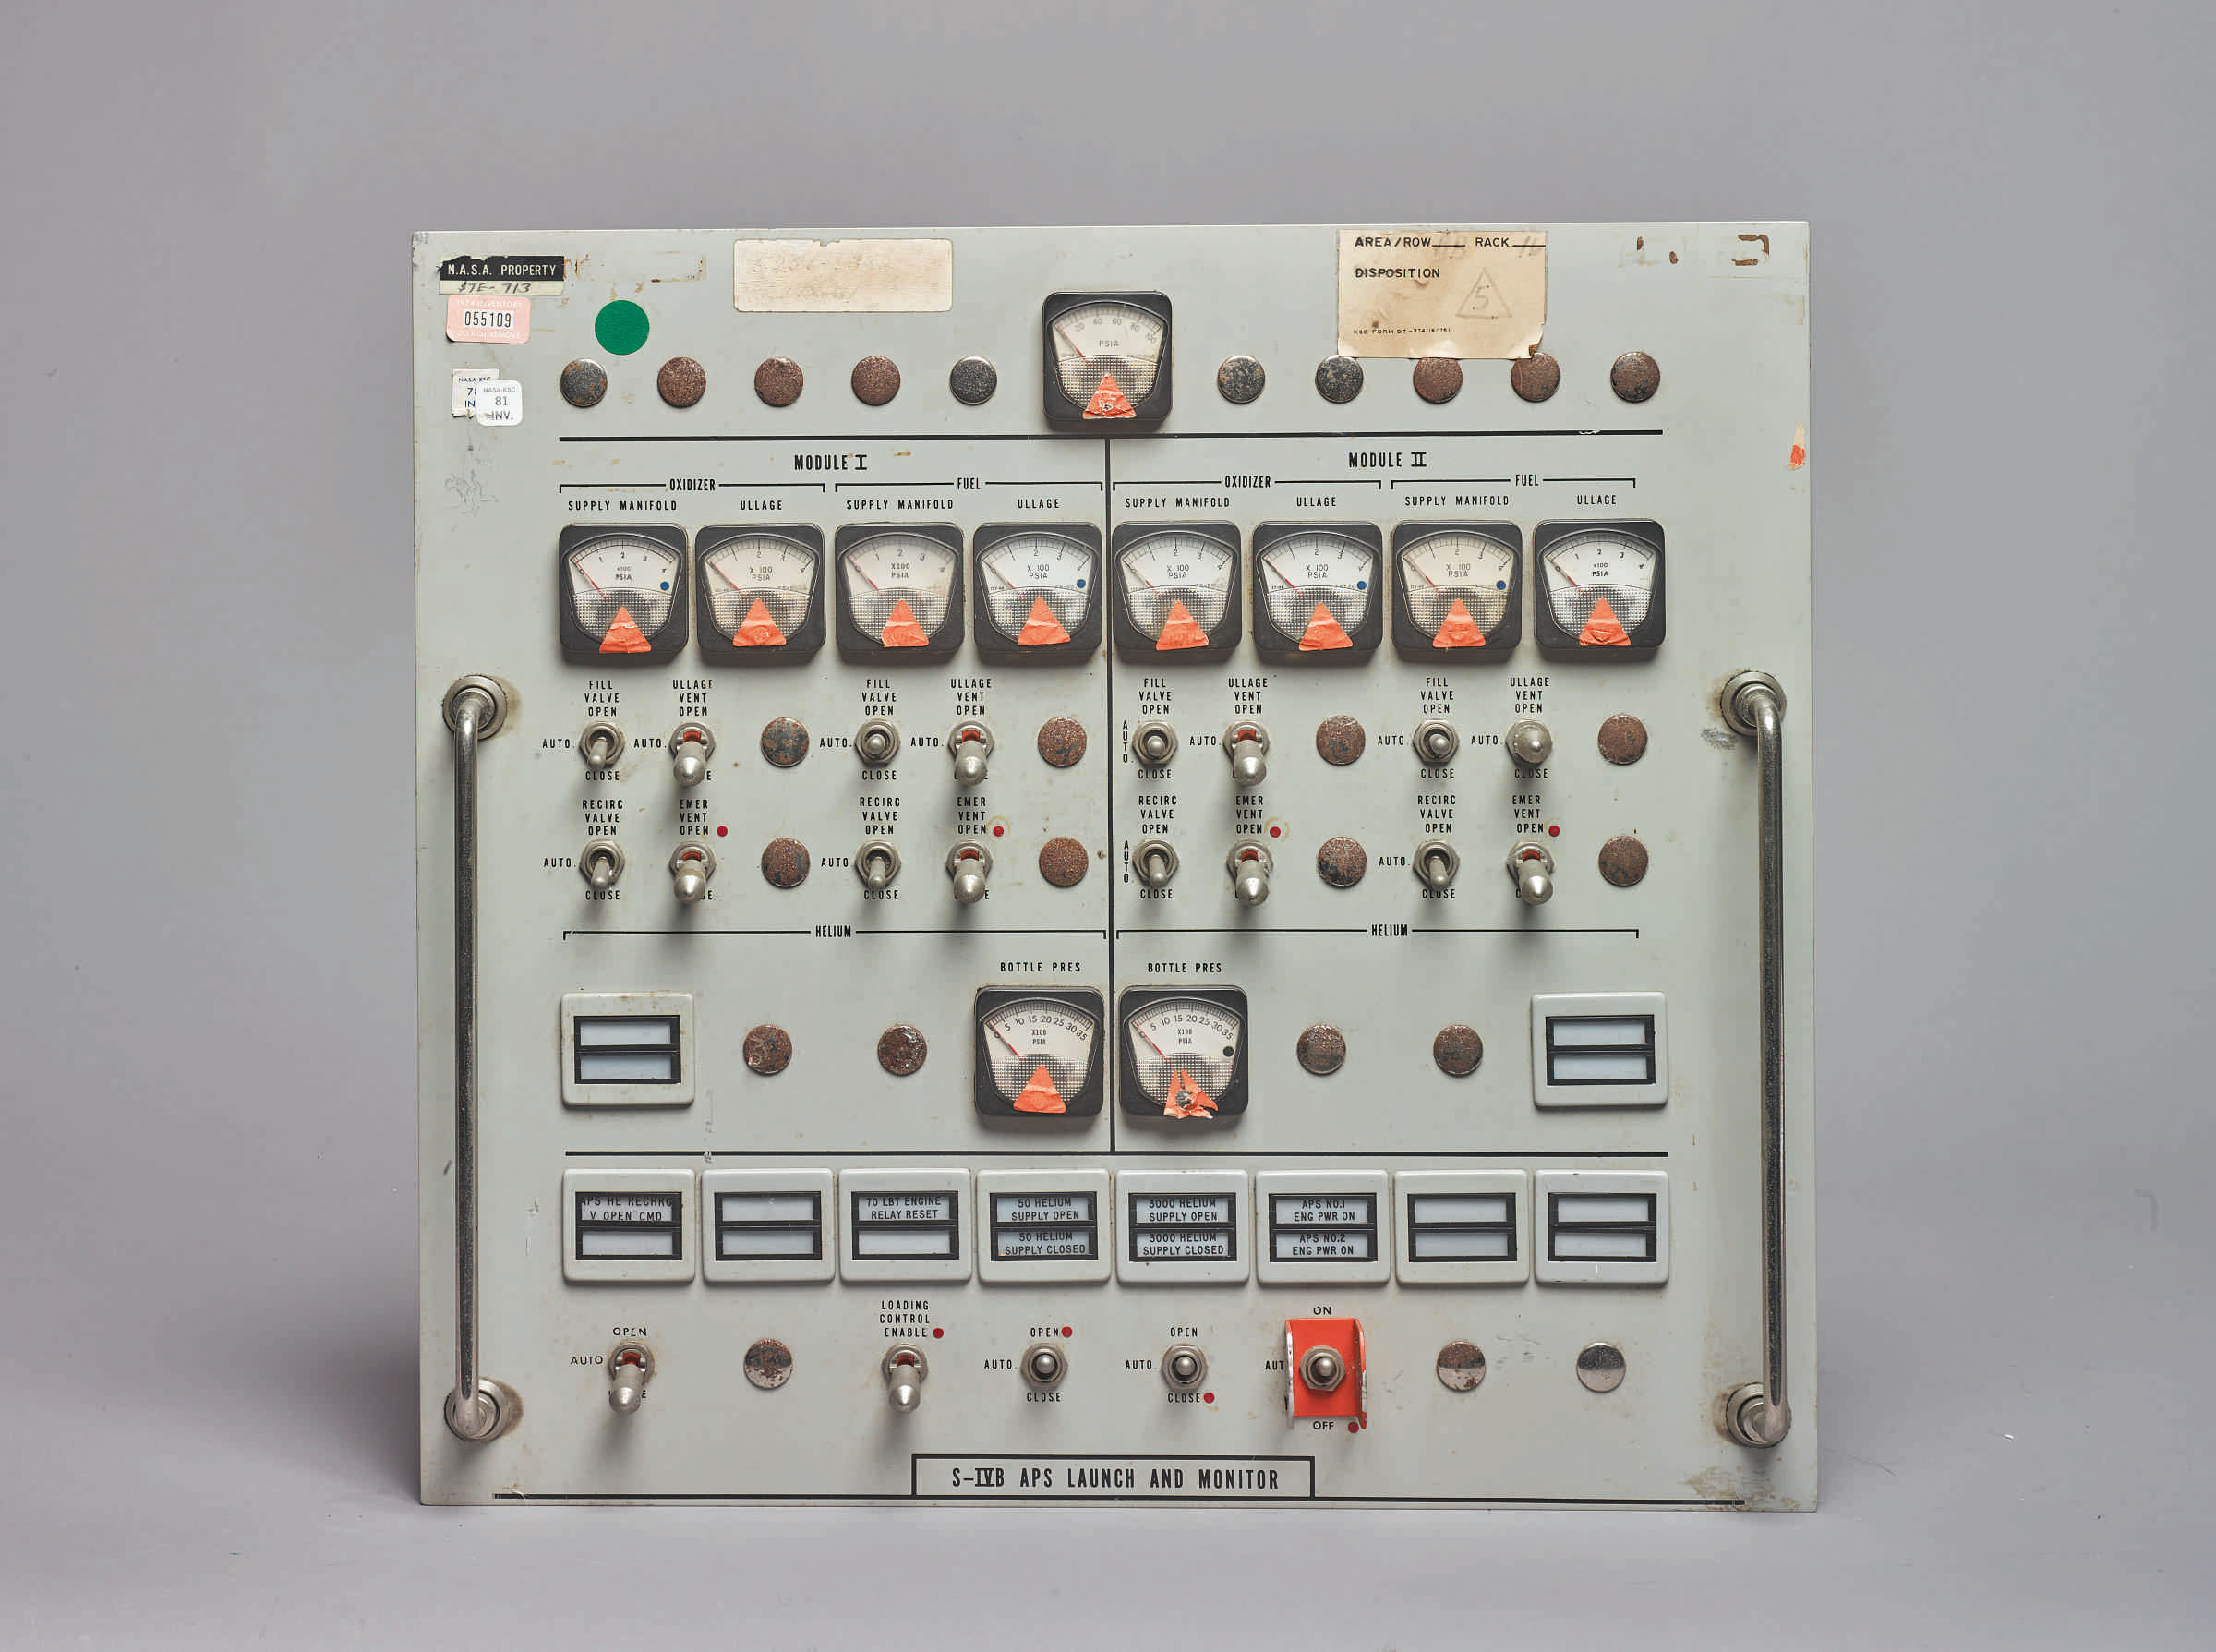 10096 Lot 105 - Apollo Firing Room Control Panels - S-IVB Aps Launch and Monitor (2 of 20 panels)